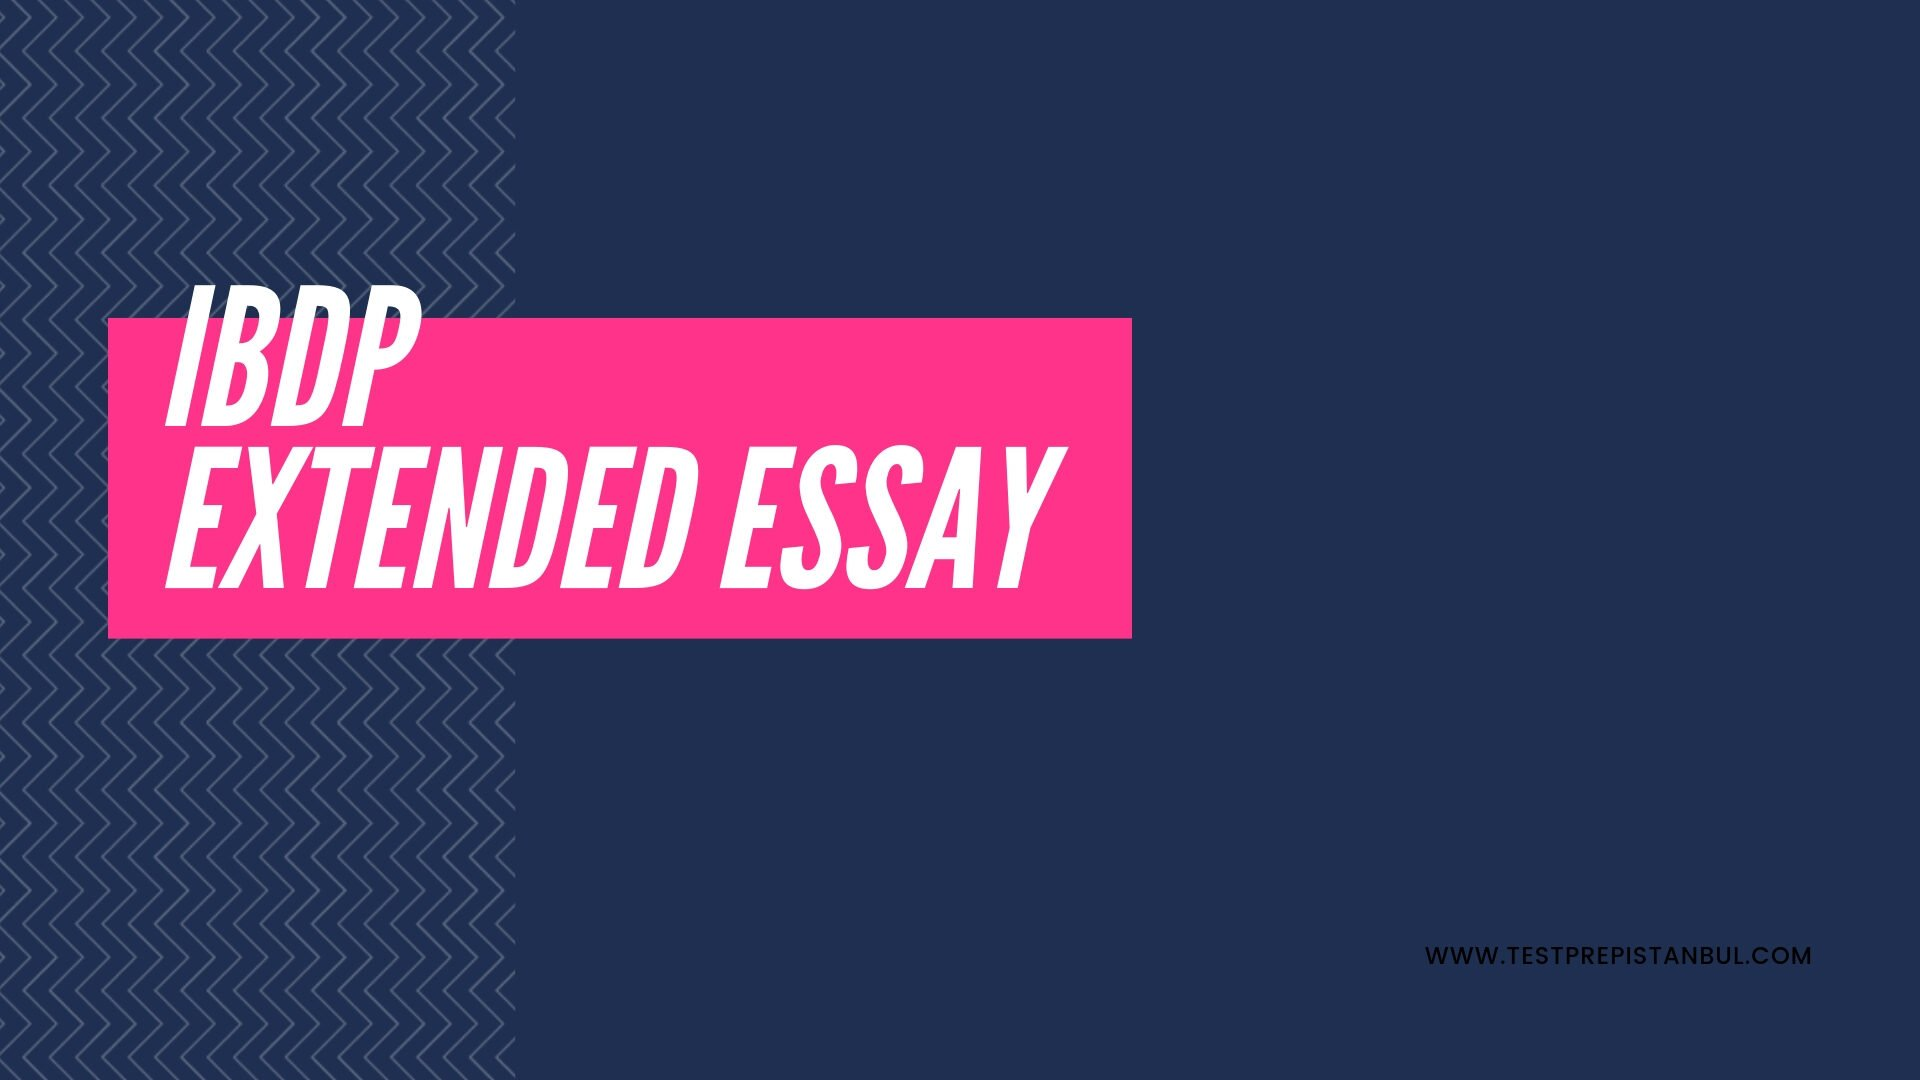 ibdp extended essay is it necessary?